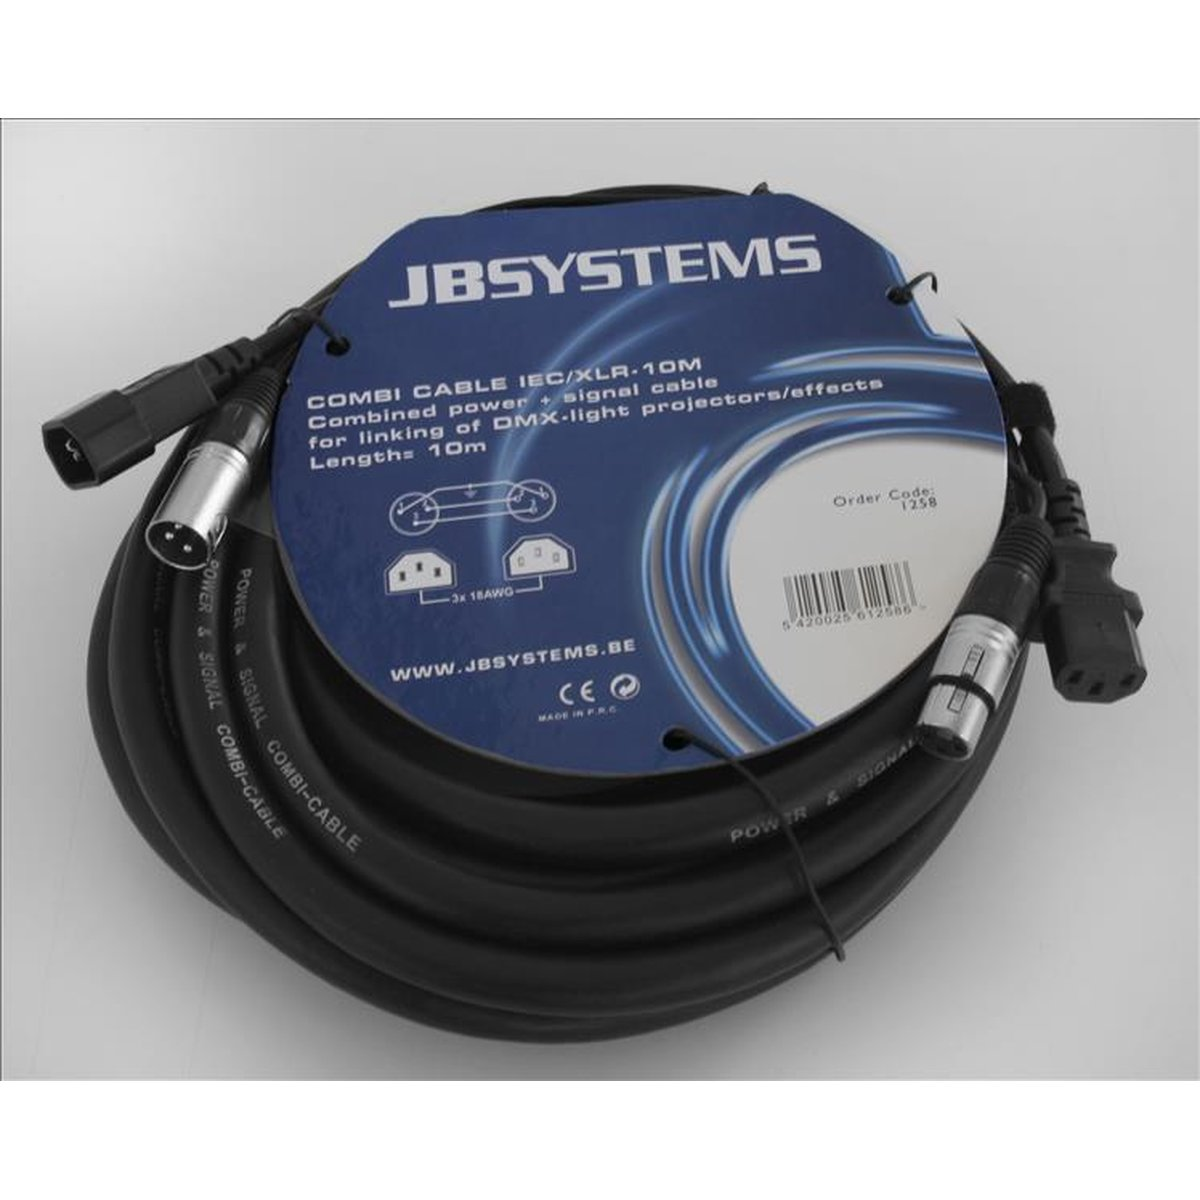 JB Systems Combi Cable IEC/XLR 10m